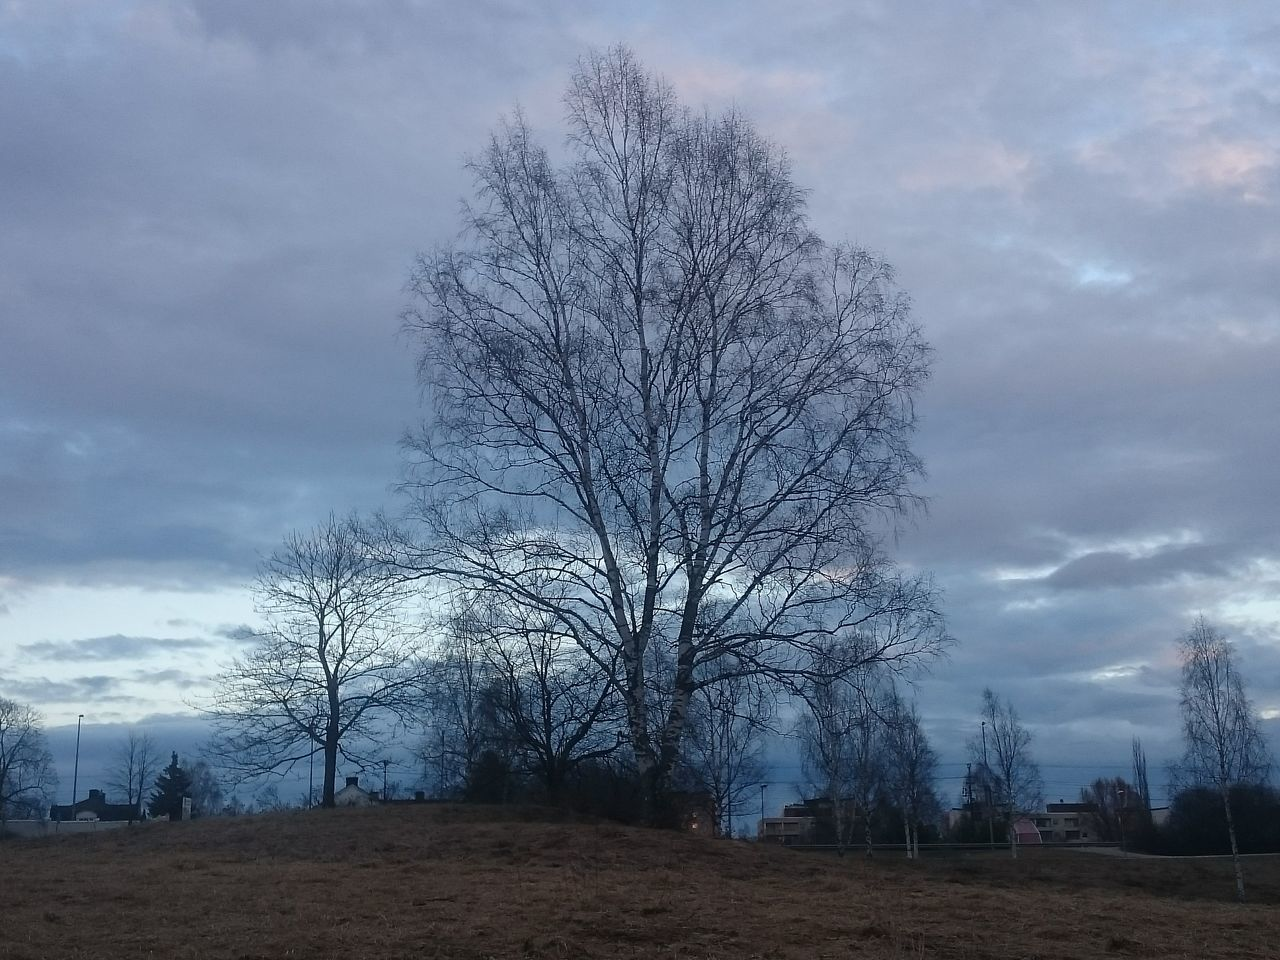 bare tree, sky, tree, cloud - sky, nature, tranquility, outdoors, landscape, no people, day, beauty in nature, scenics